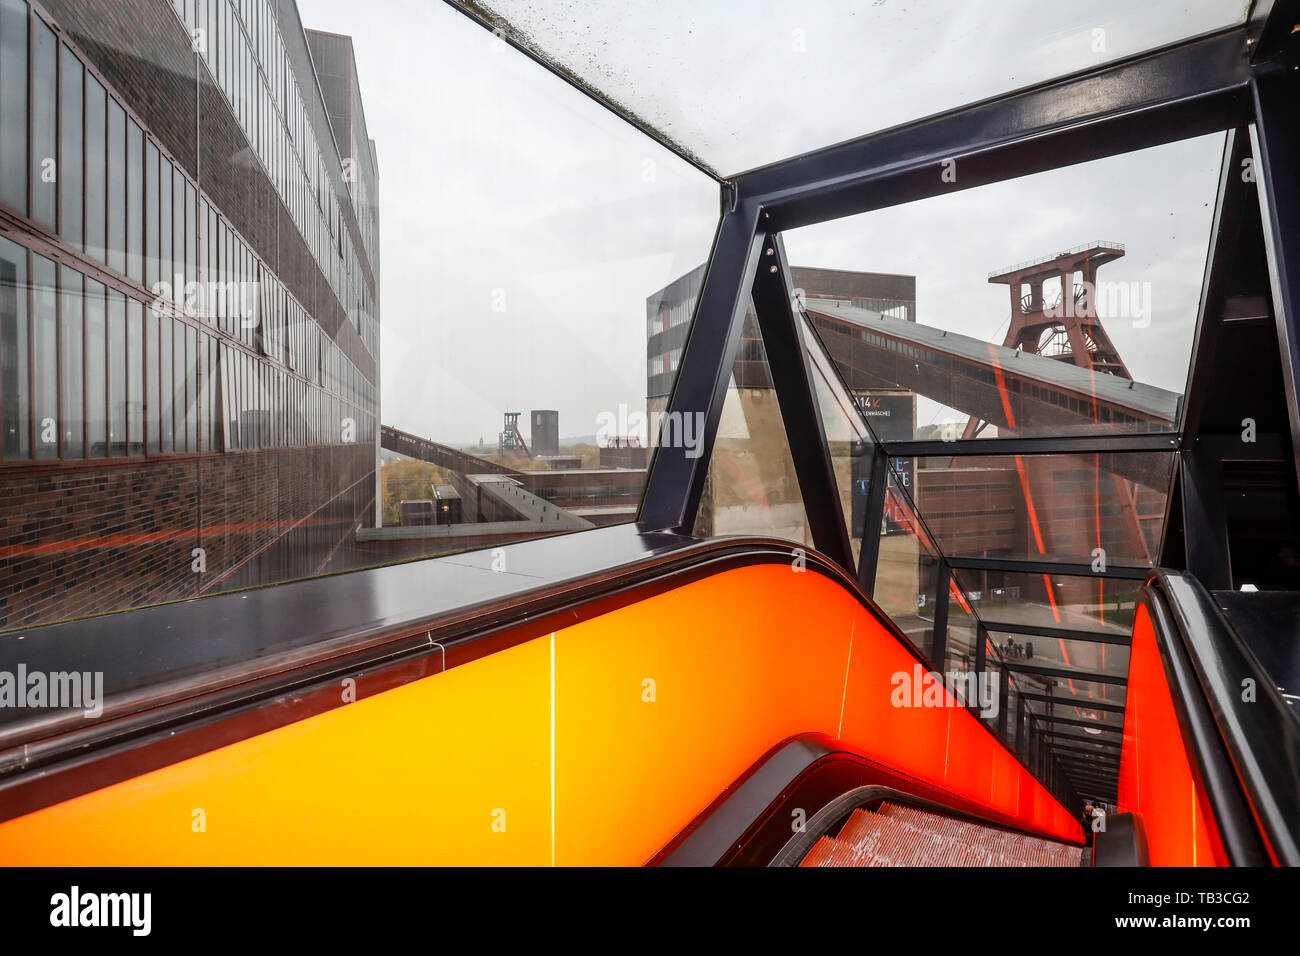 09.11.2017, Essen, North Rhine-Westphalia, Germany - World heritage site, Zollverein colliery, view from the coal wash through the glass roof of the e - Stock Image